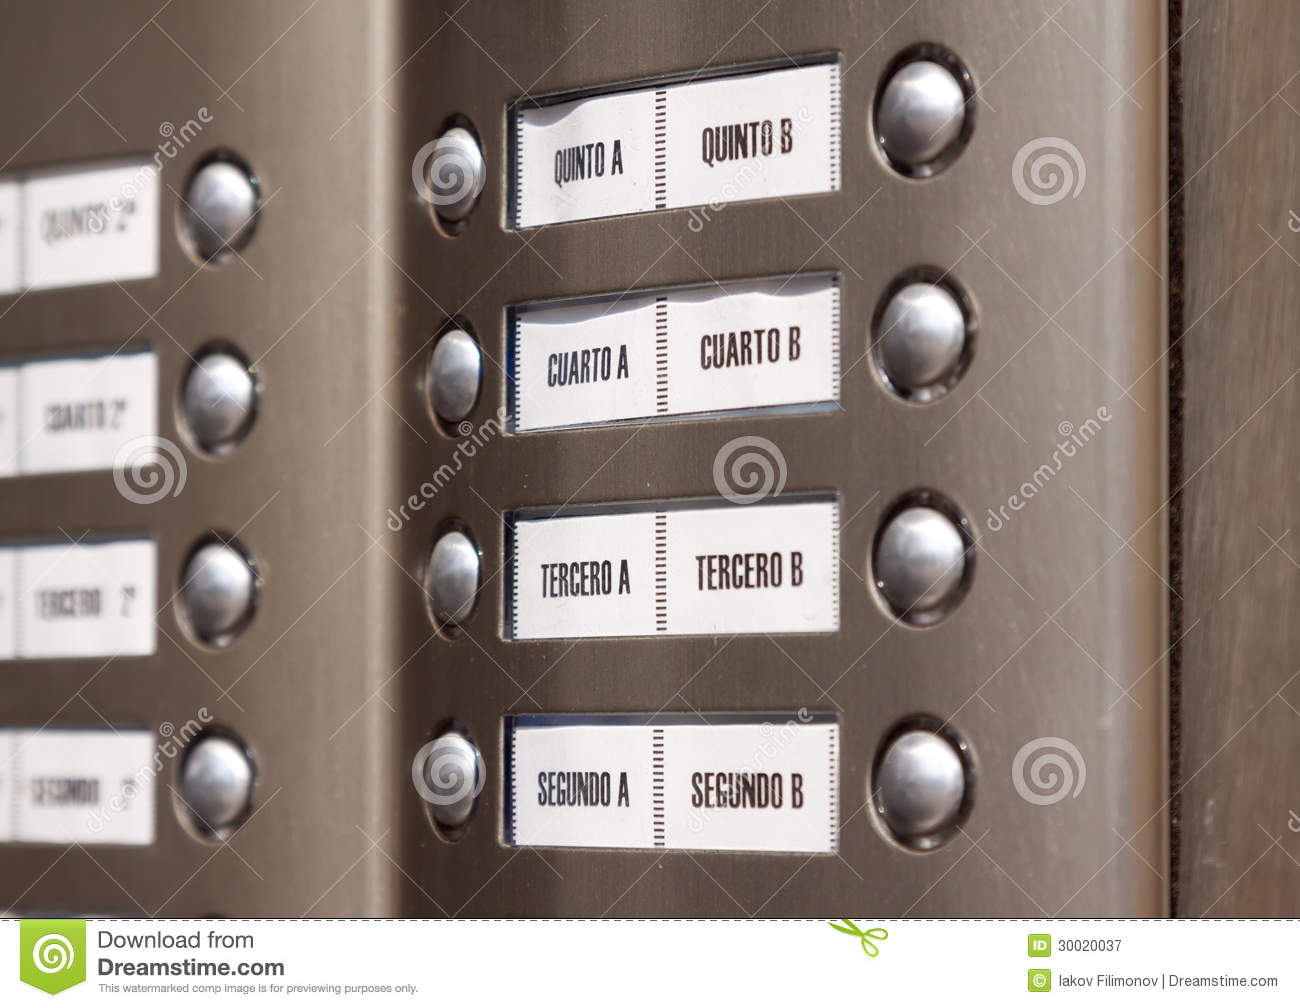 Building Intercom Apartment Numbers In Spanish Royalty